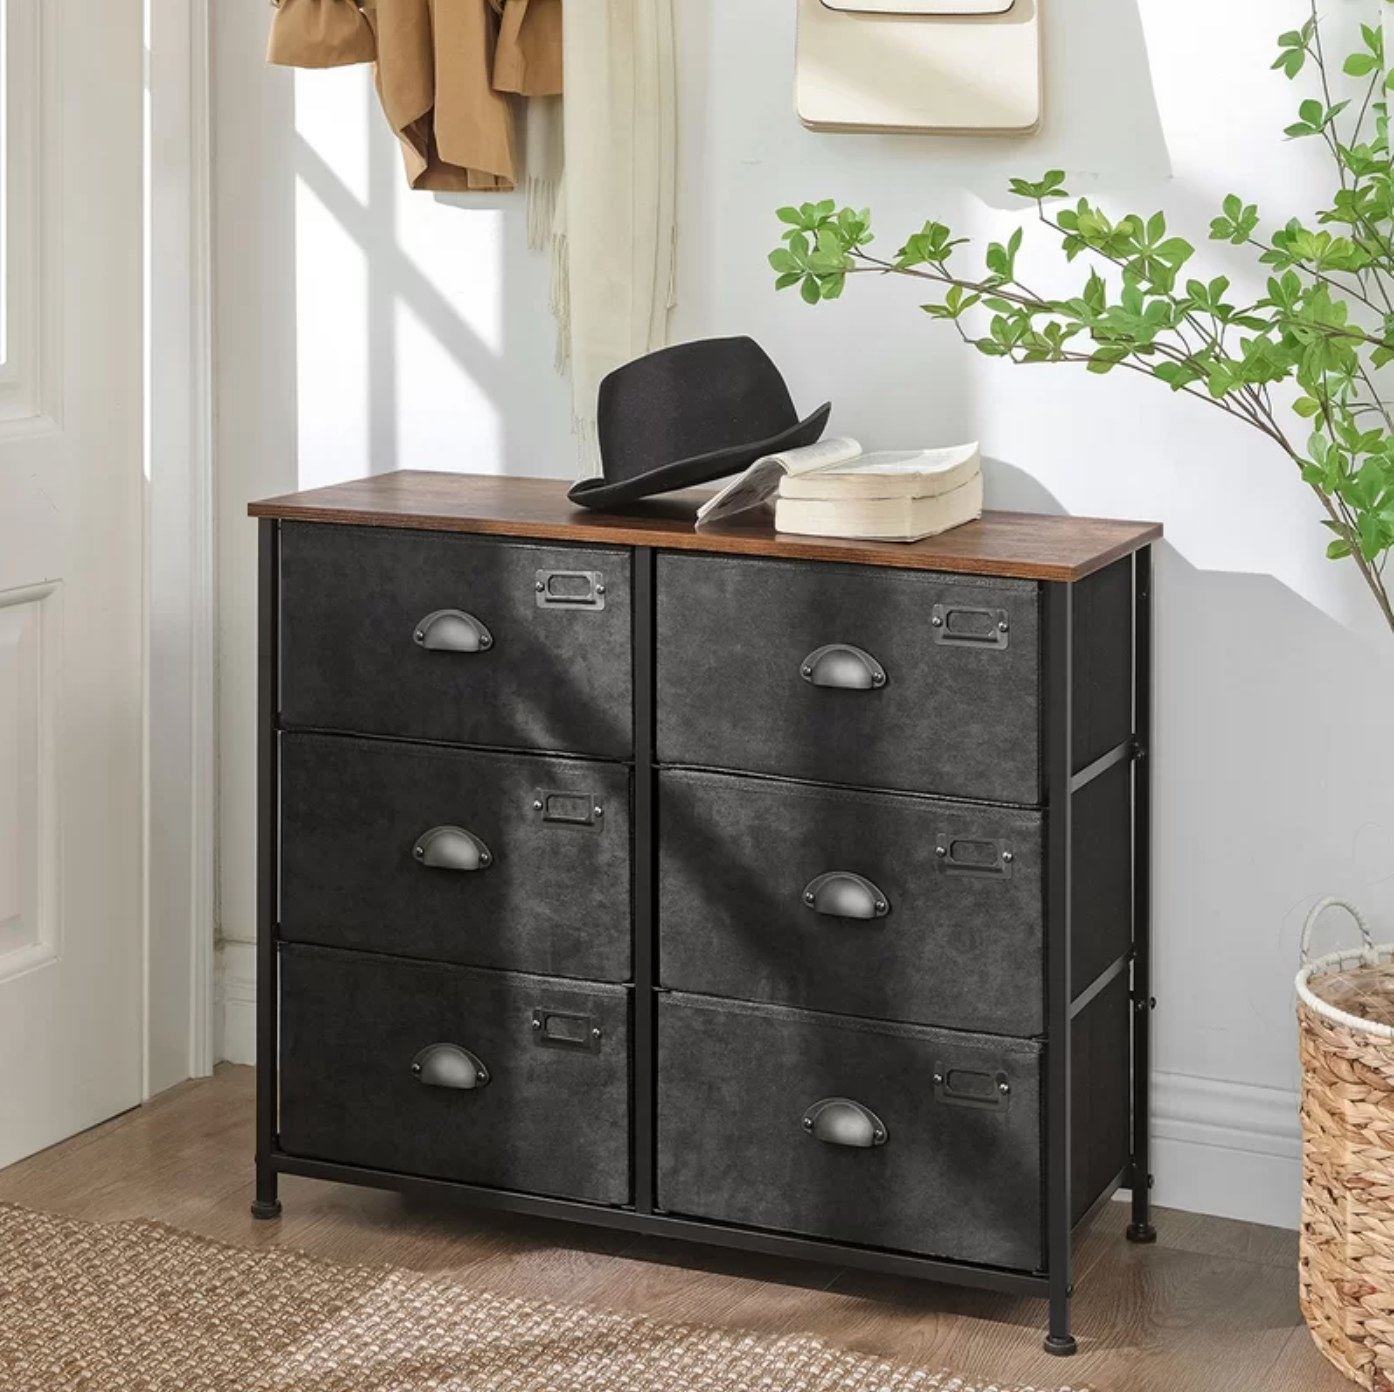 The six drawer dresser in black with a wood top